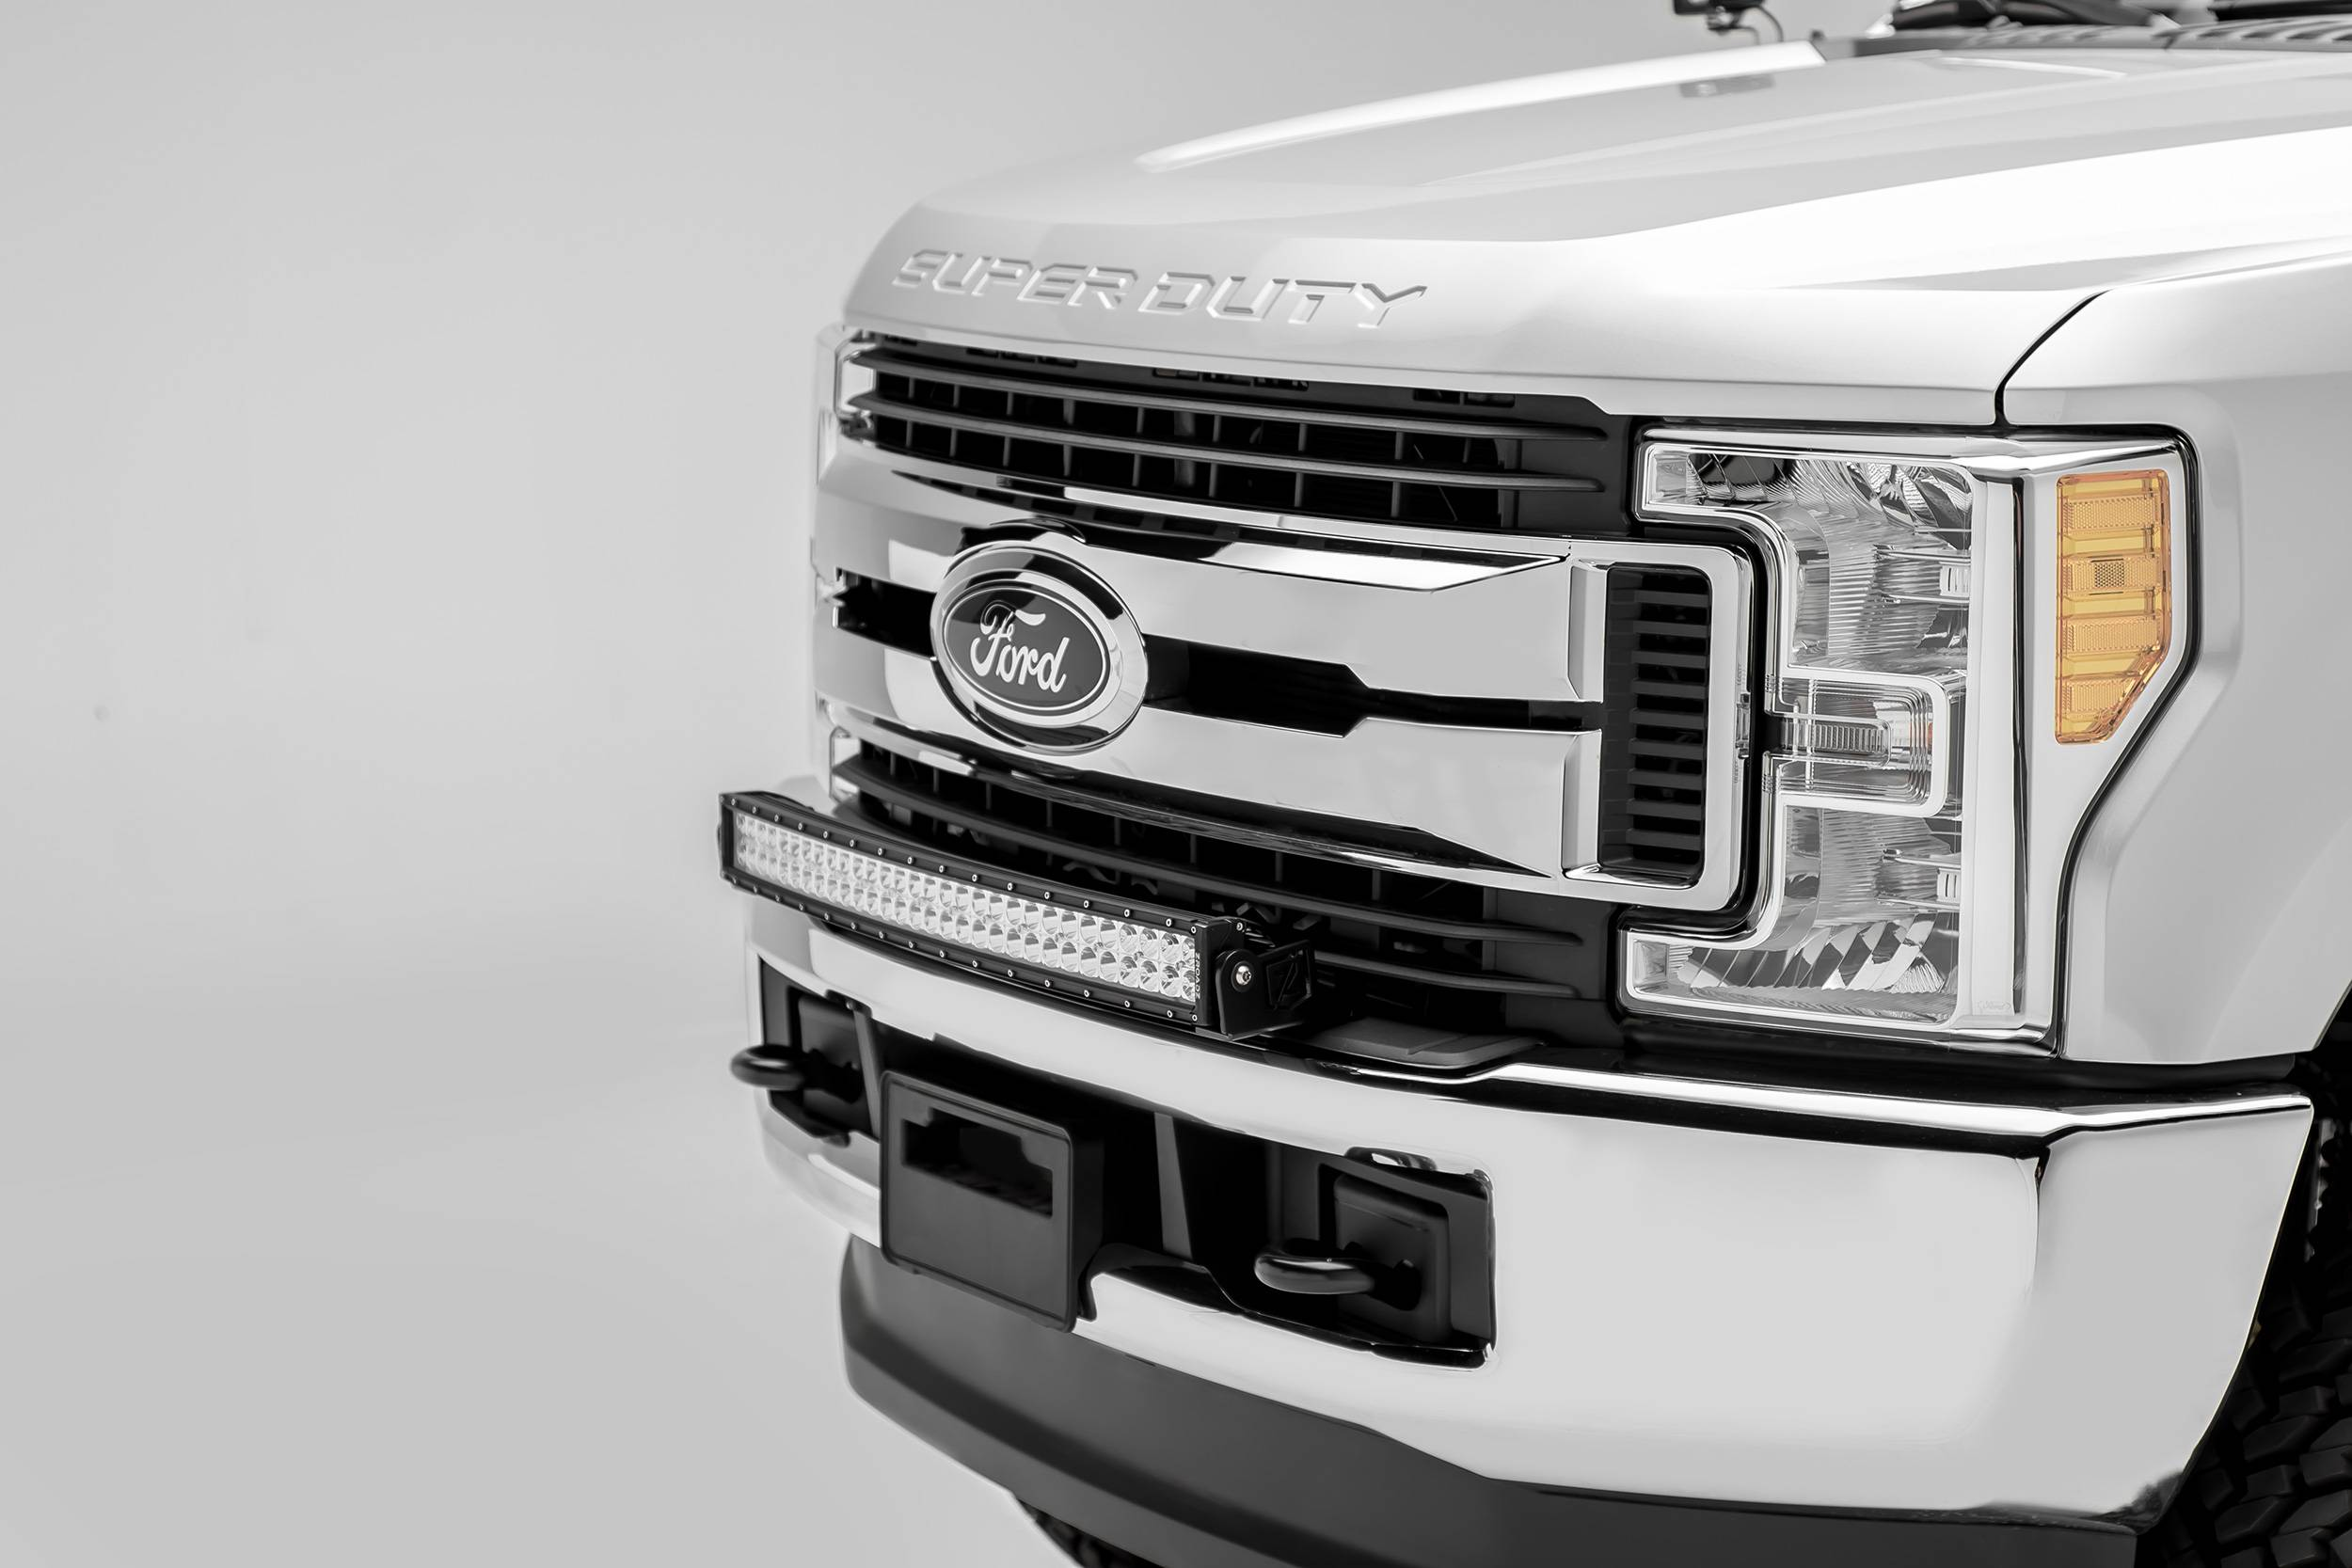 2017-2019 Ford Super Duty Front Bumper Top LED Kit, Incl. (1) 30 Inch LED Curved Double Row Light Bar - PN #Z325472-KIT